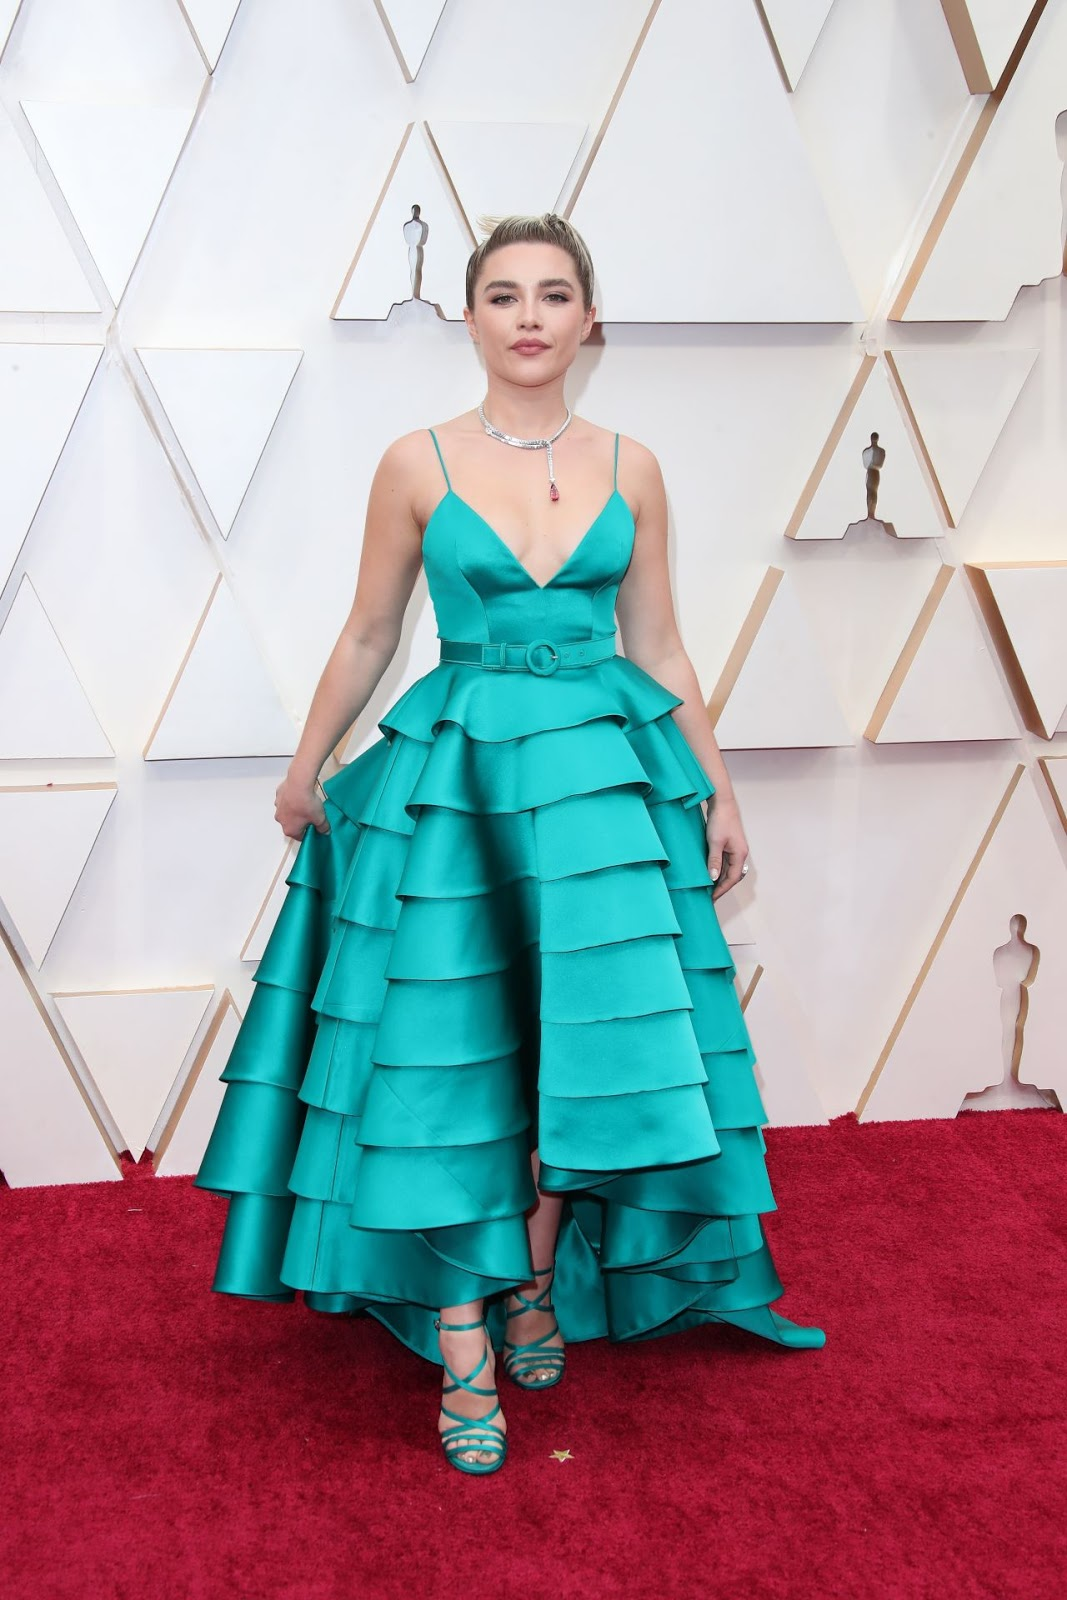 Florence Pugh arrives in tiered teal Louis Vuitton gown to the 2020 Oscars in Hollywood